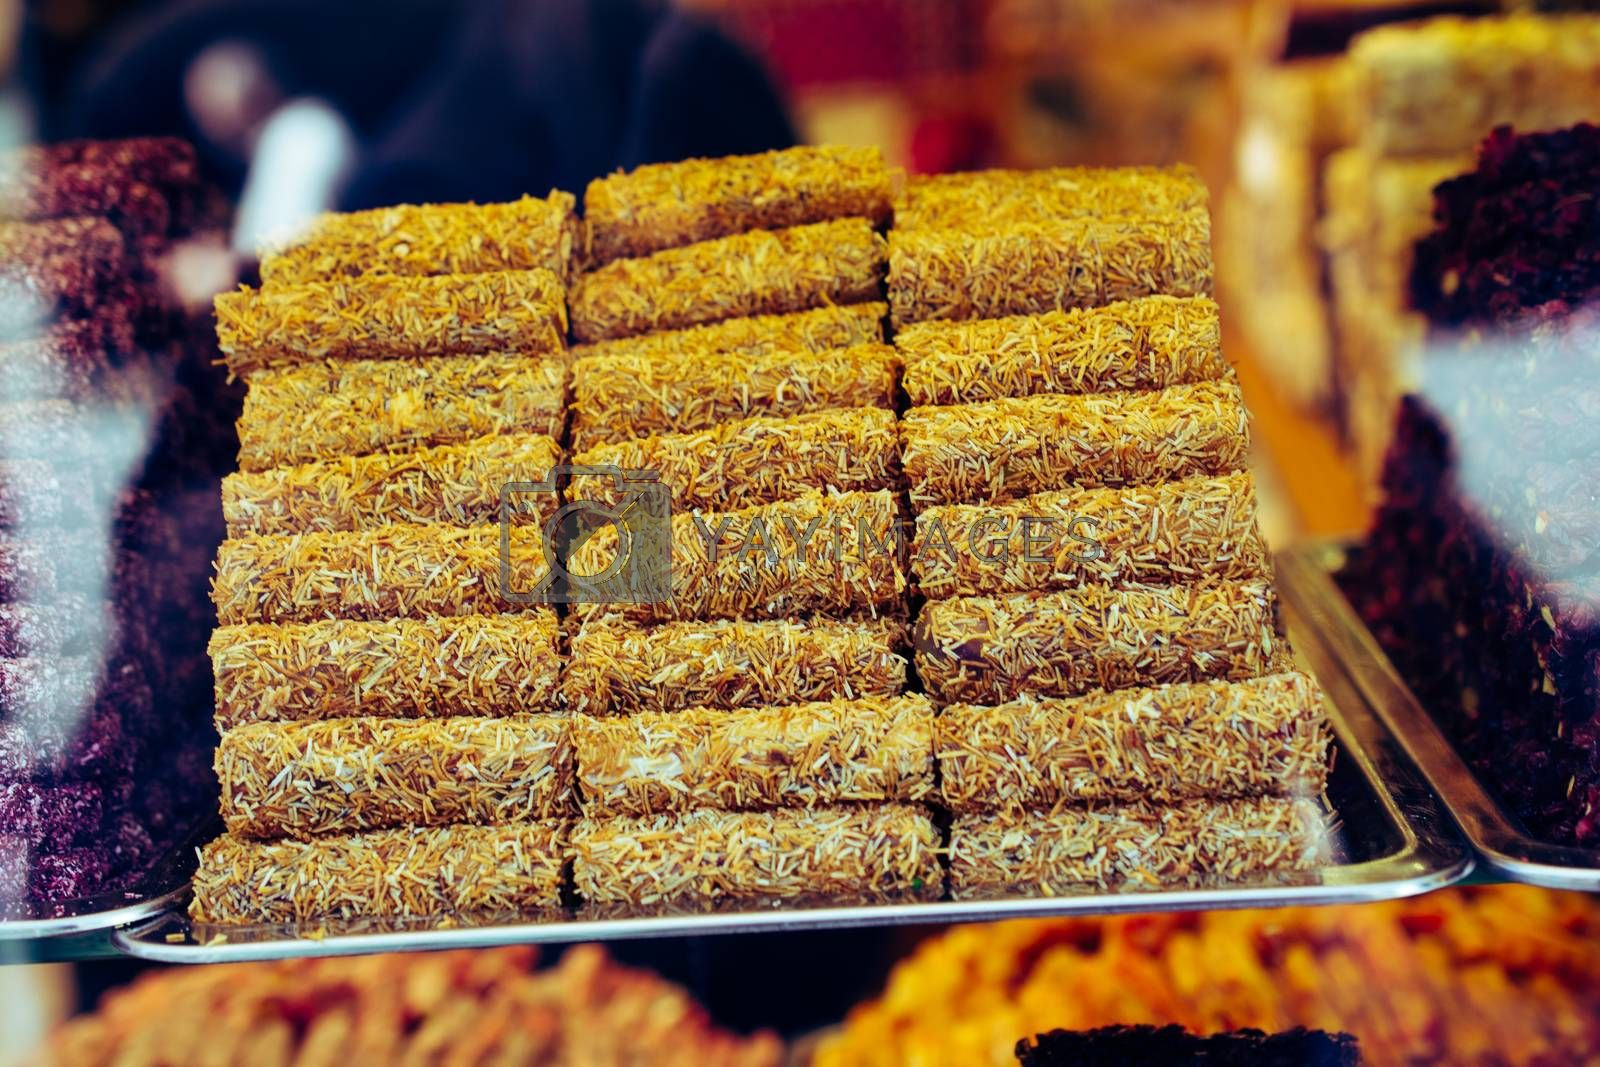 Turkish delight or lokum is a family of confections based on a gel of starch and sugar